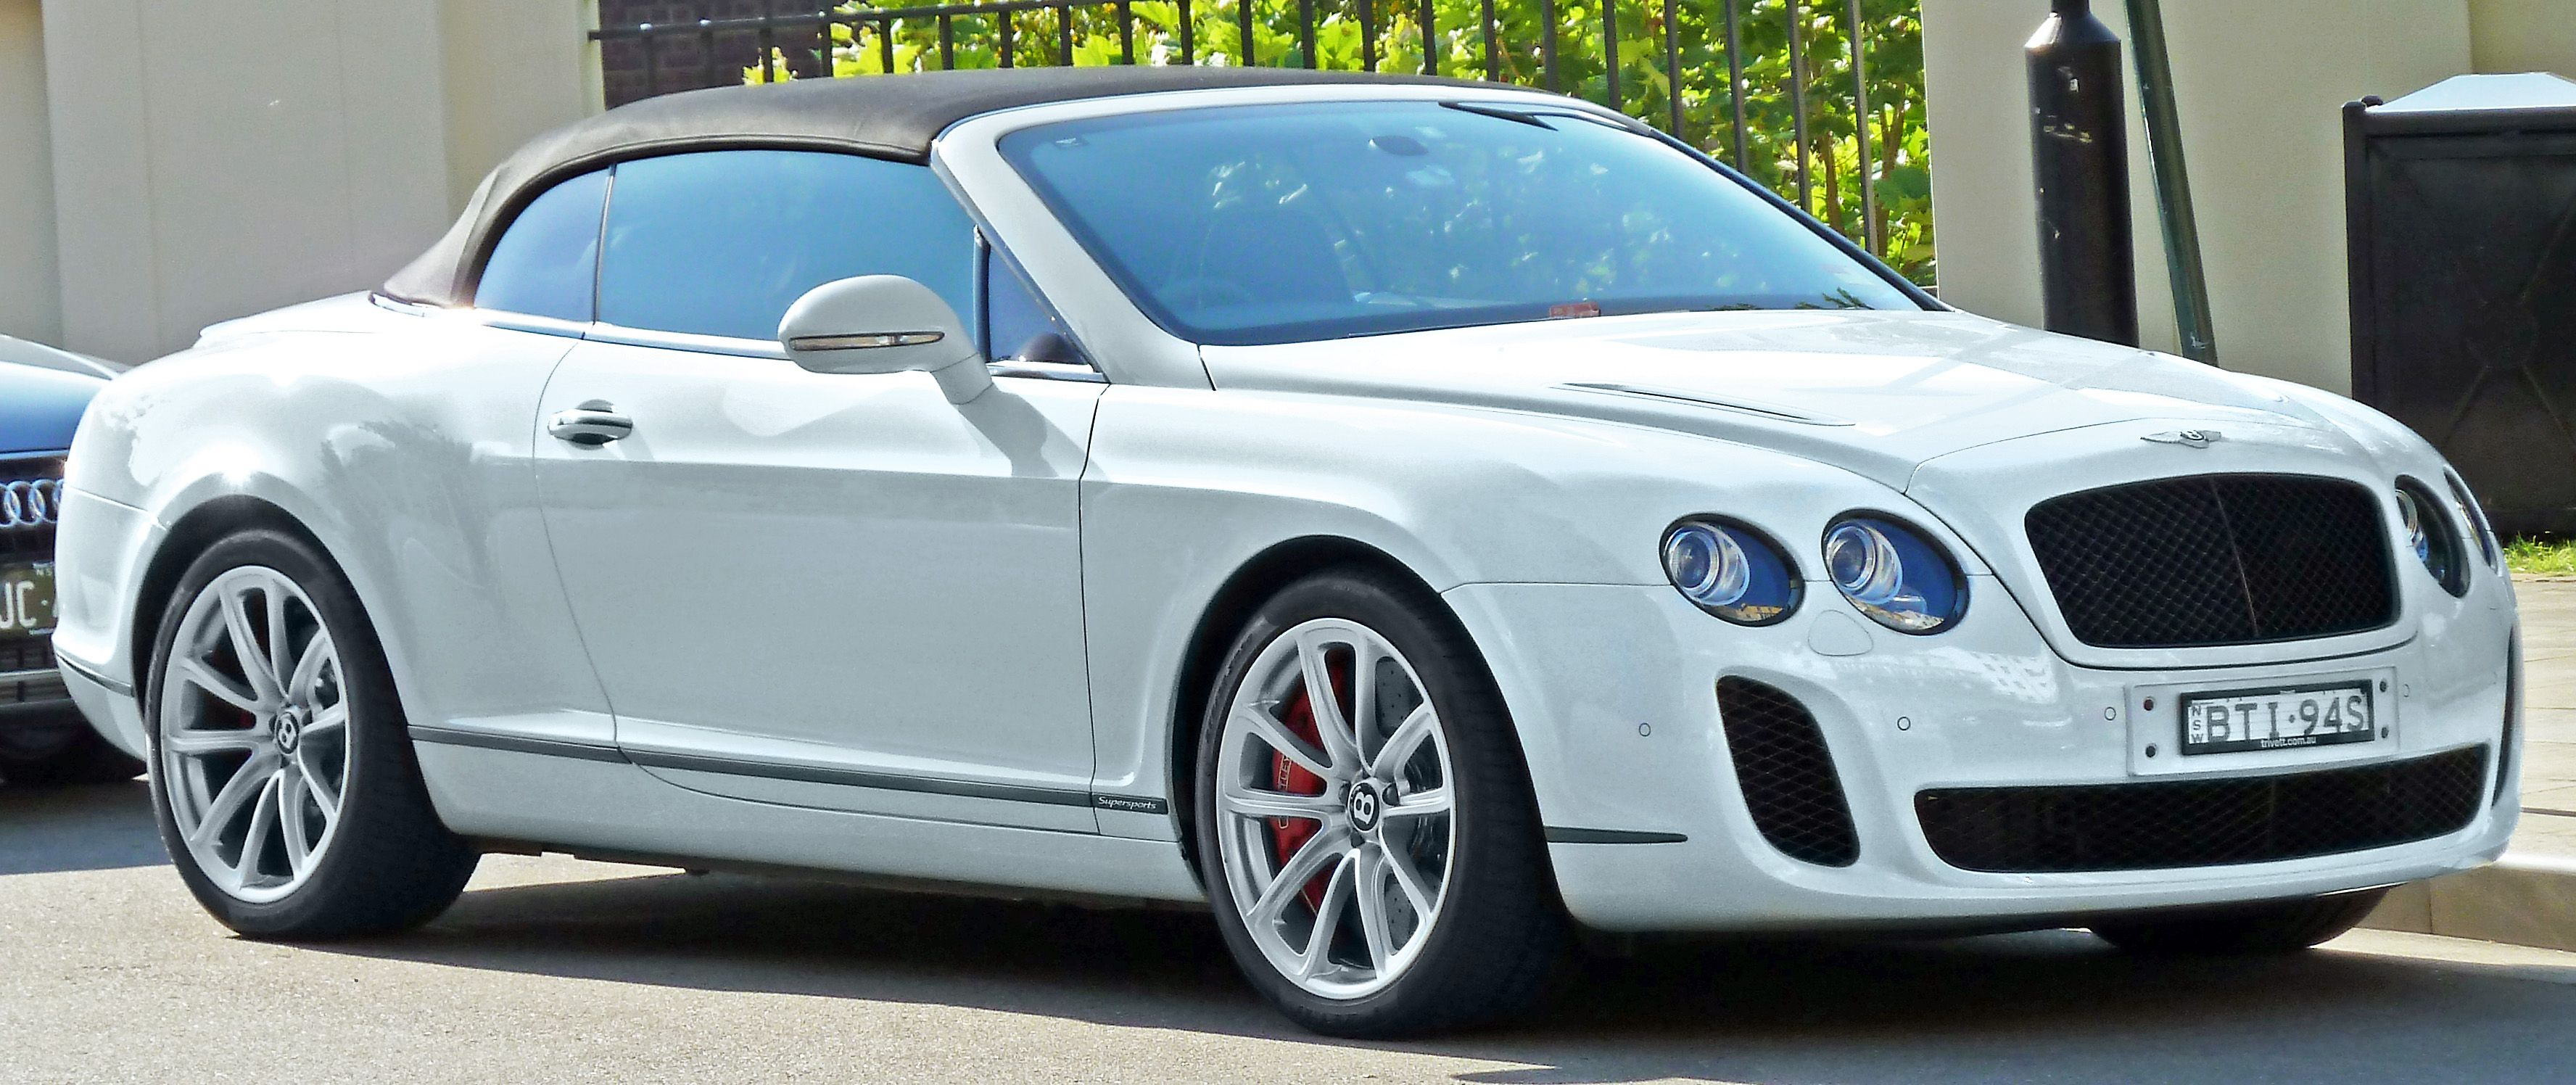 gt coupe view car cars attachment website bentley convertible about price sport continental